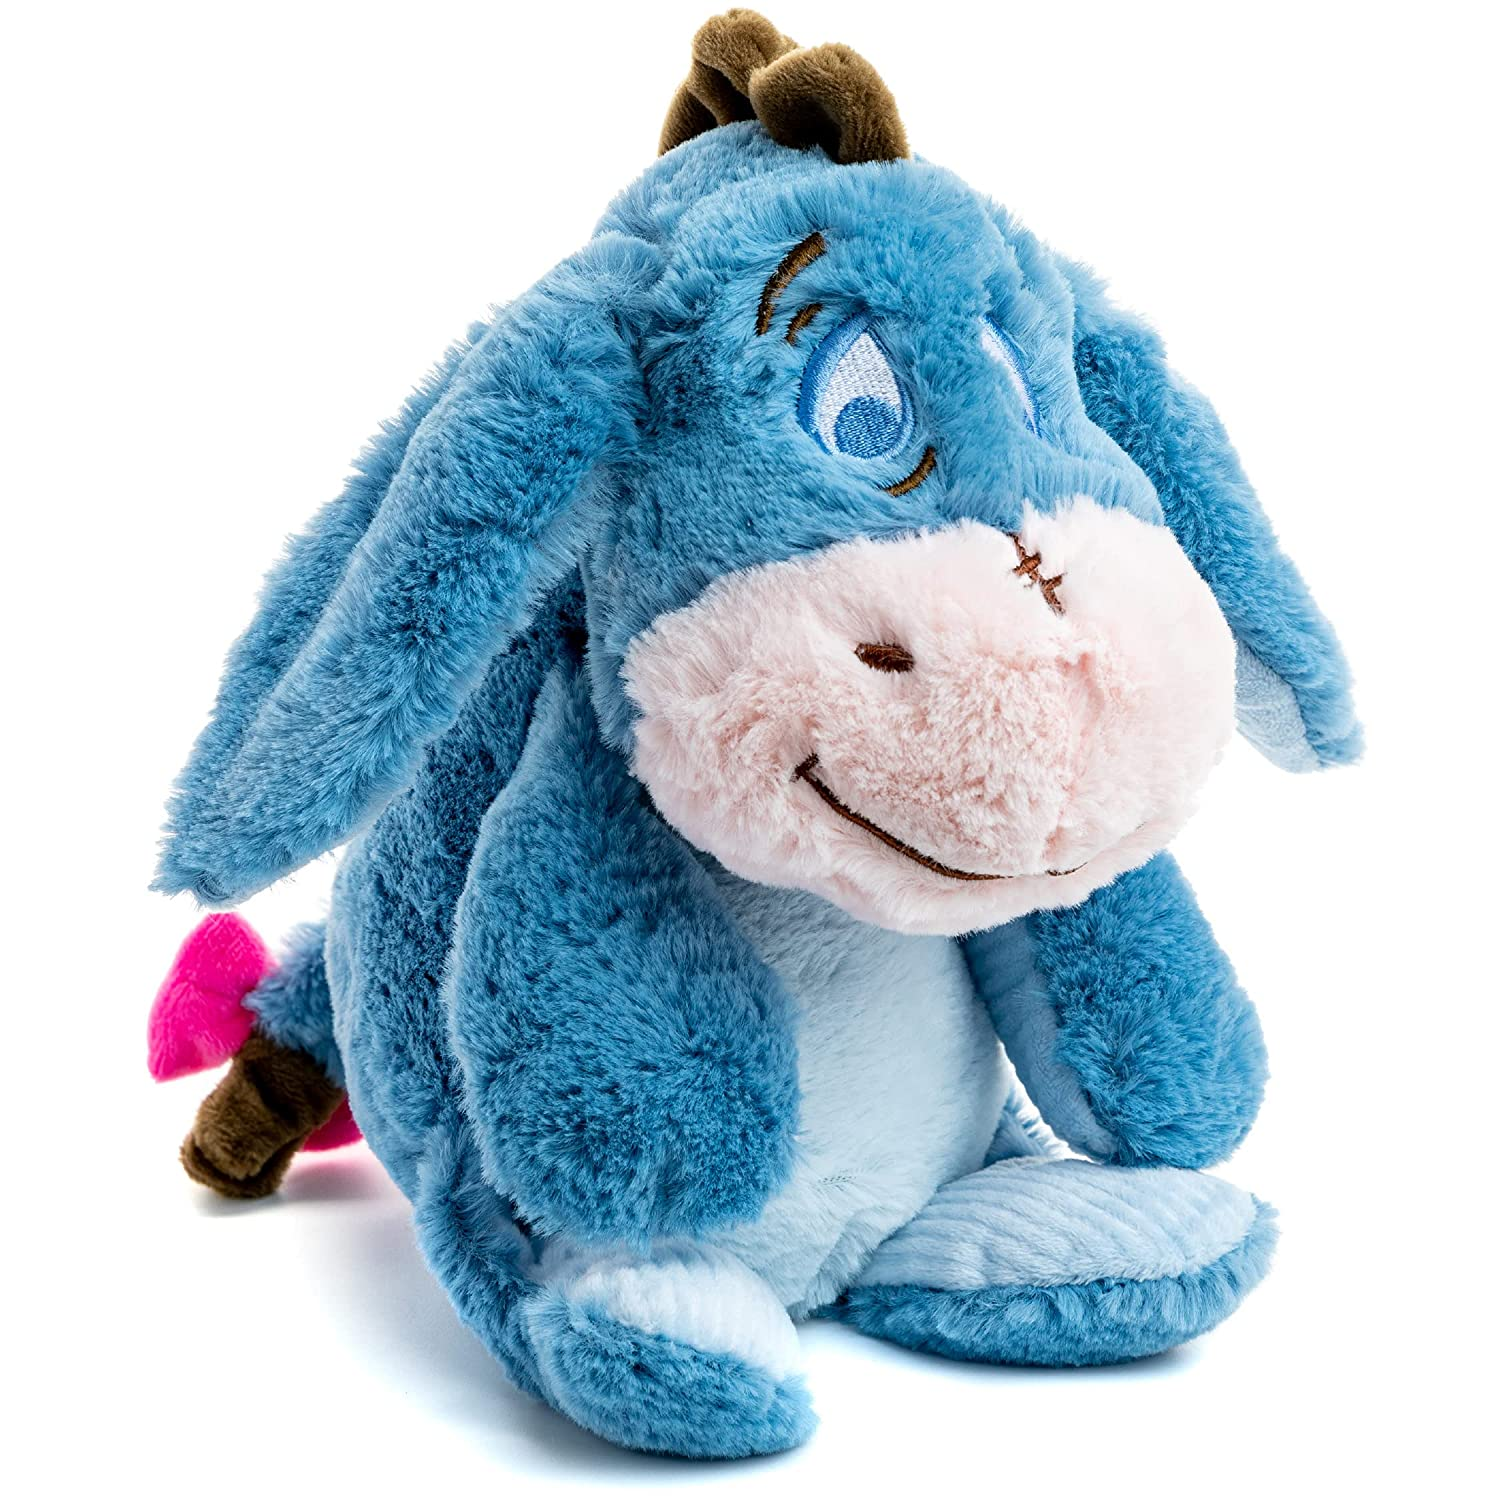 Amazon Com Disney Baby Winnie The Pooh And Friends Stuffed Animal With Jingle And Crinkle Eeyore Plush Toys Toys Games